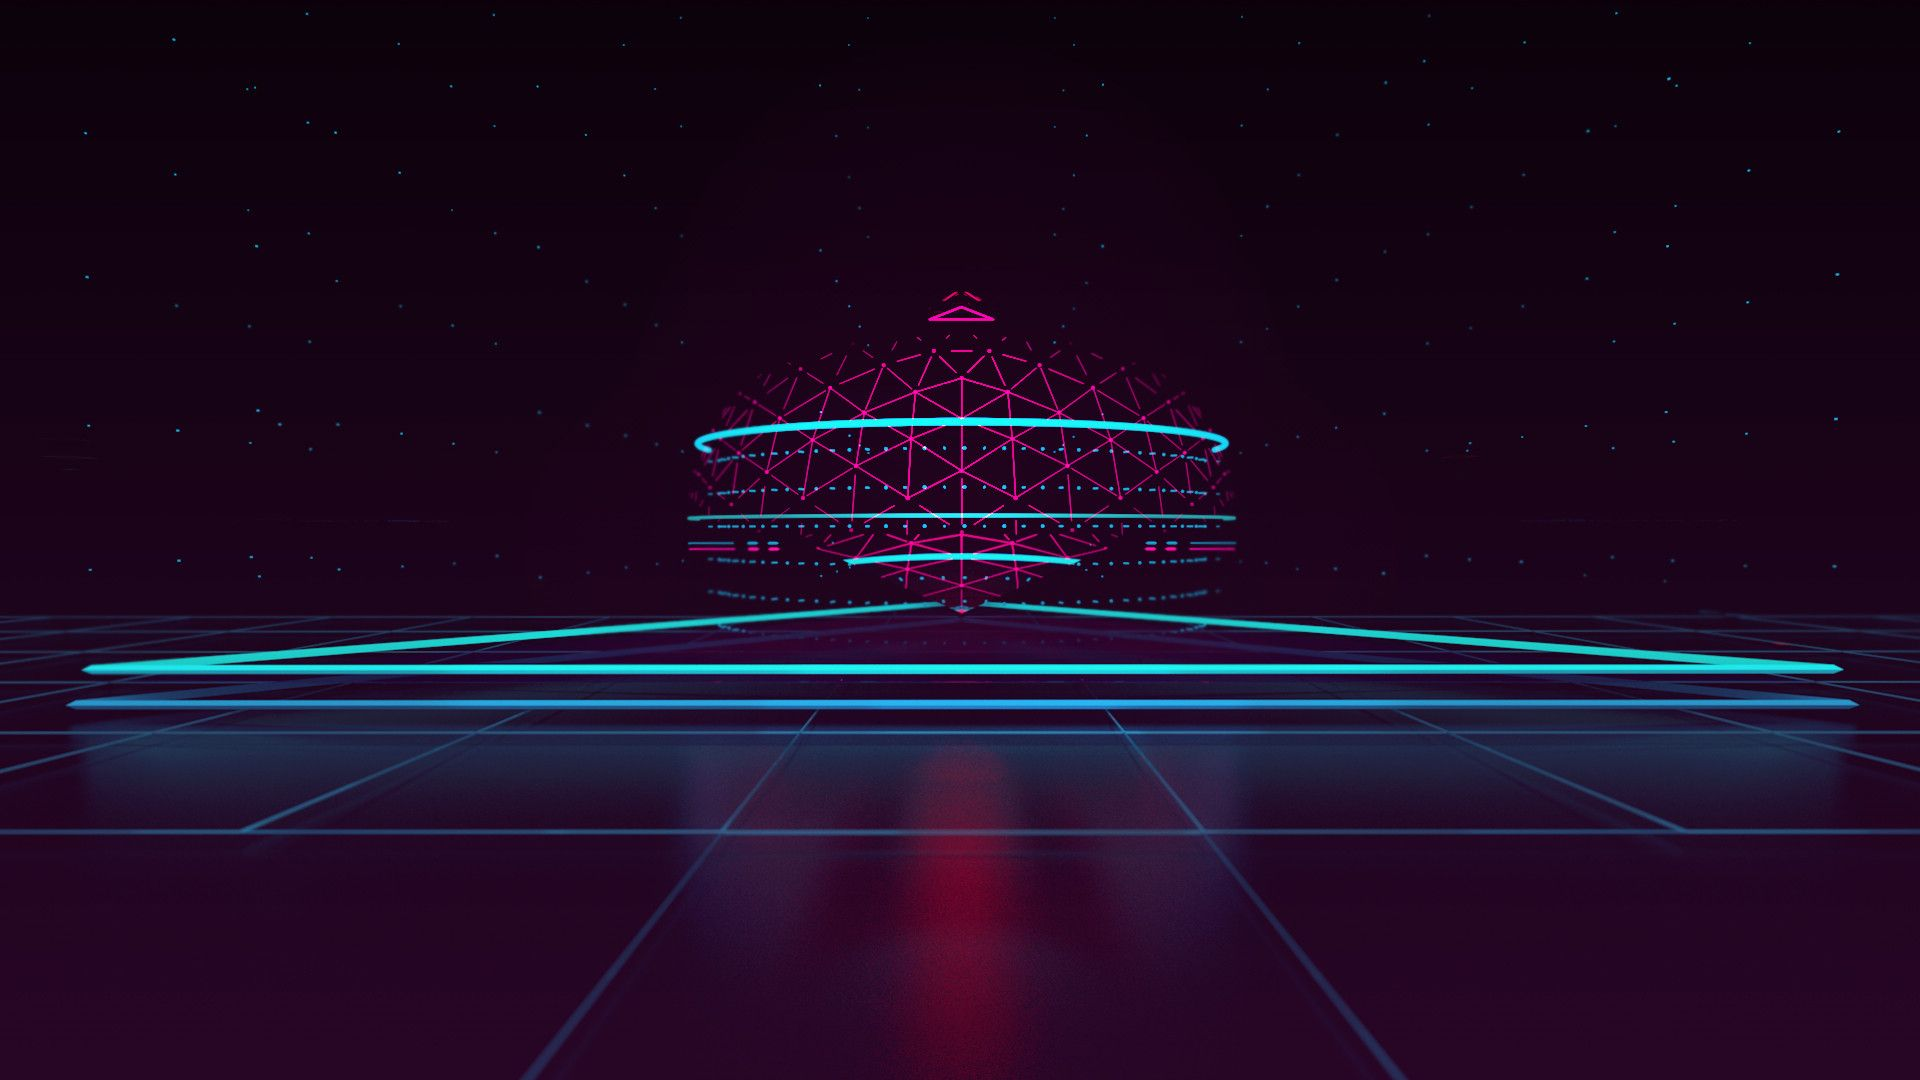 Synthwave background wallpaper